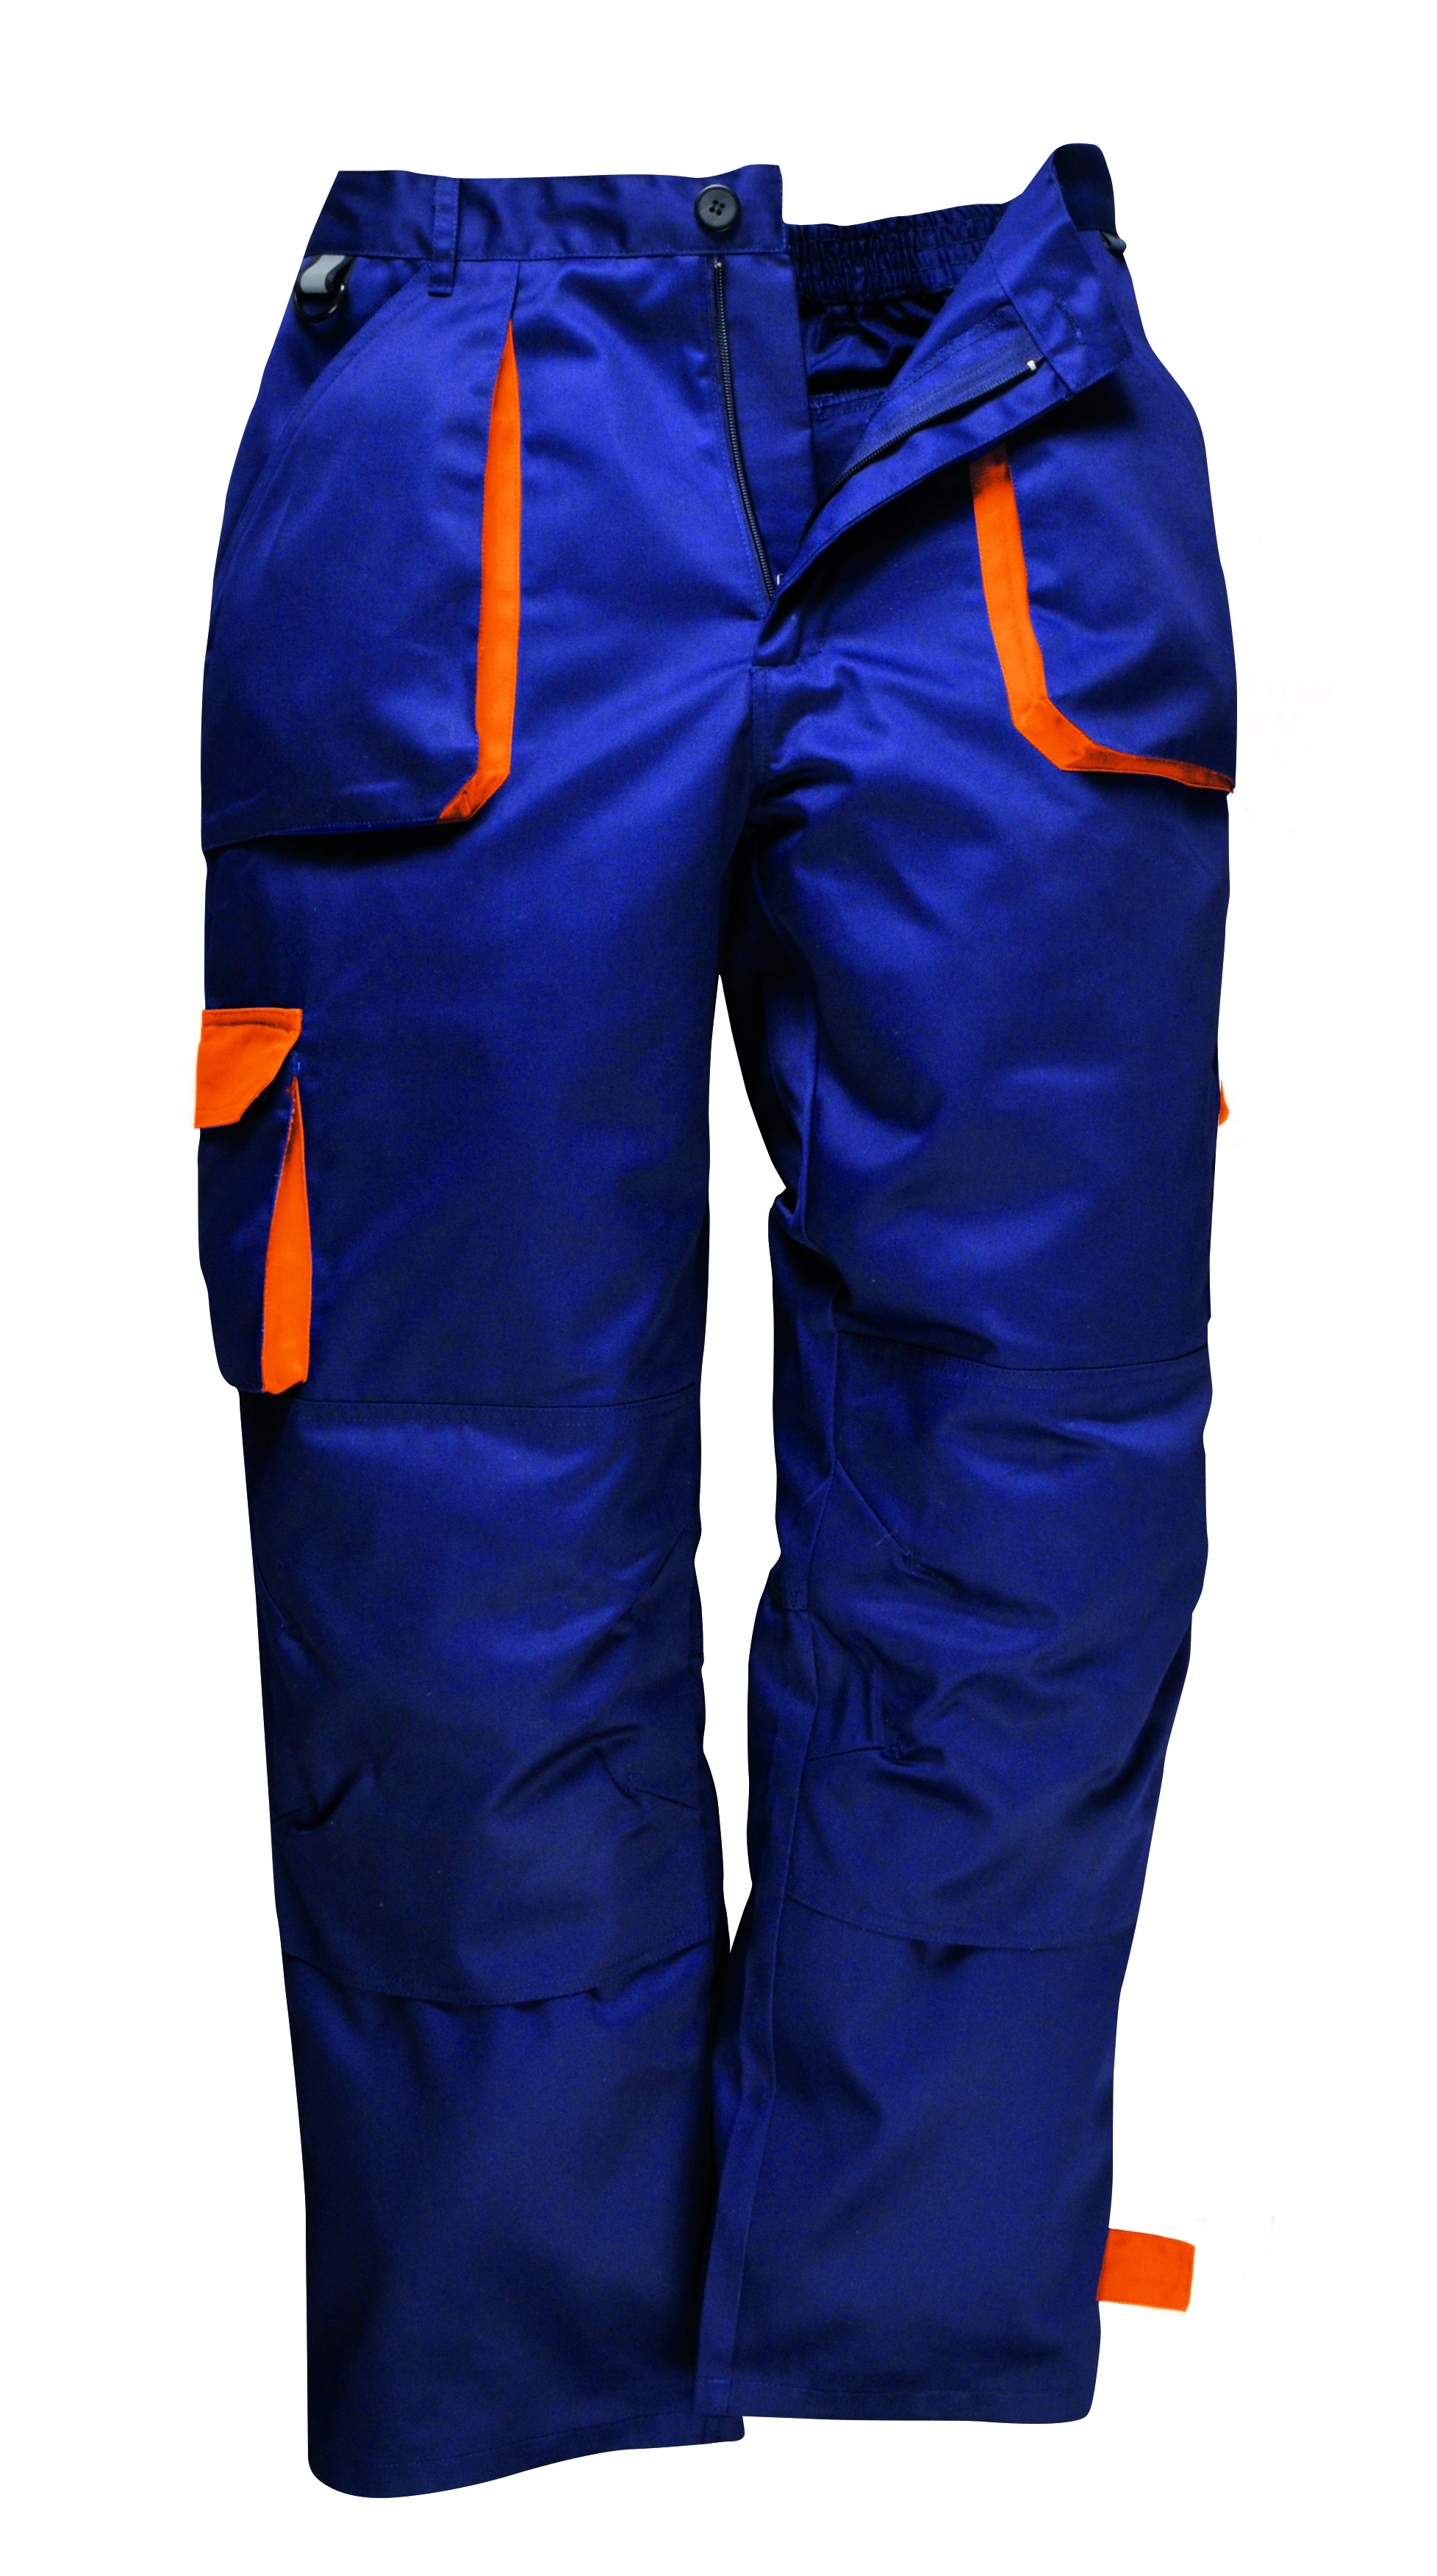 New Portwest Texo Contrast Trouser Elasticated Waistband Work Wear Kneepad Pants